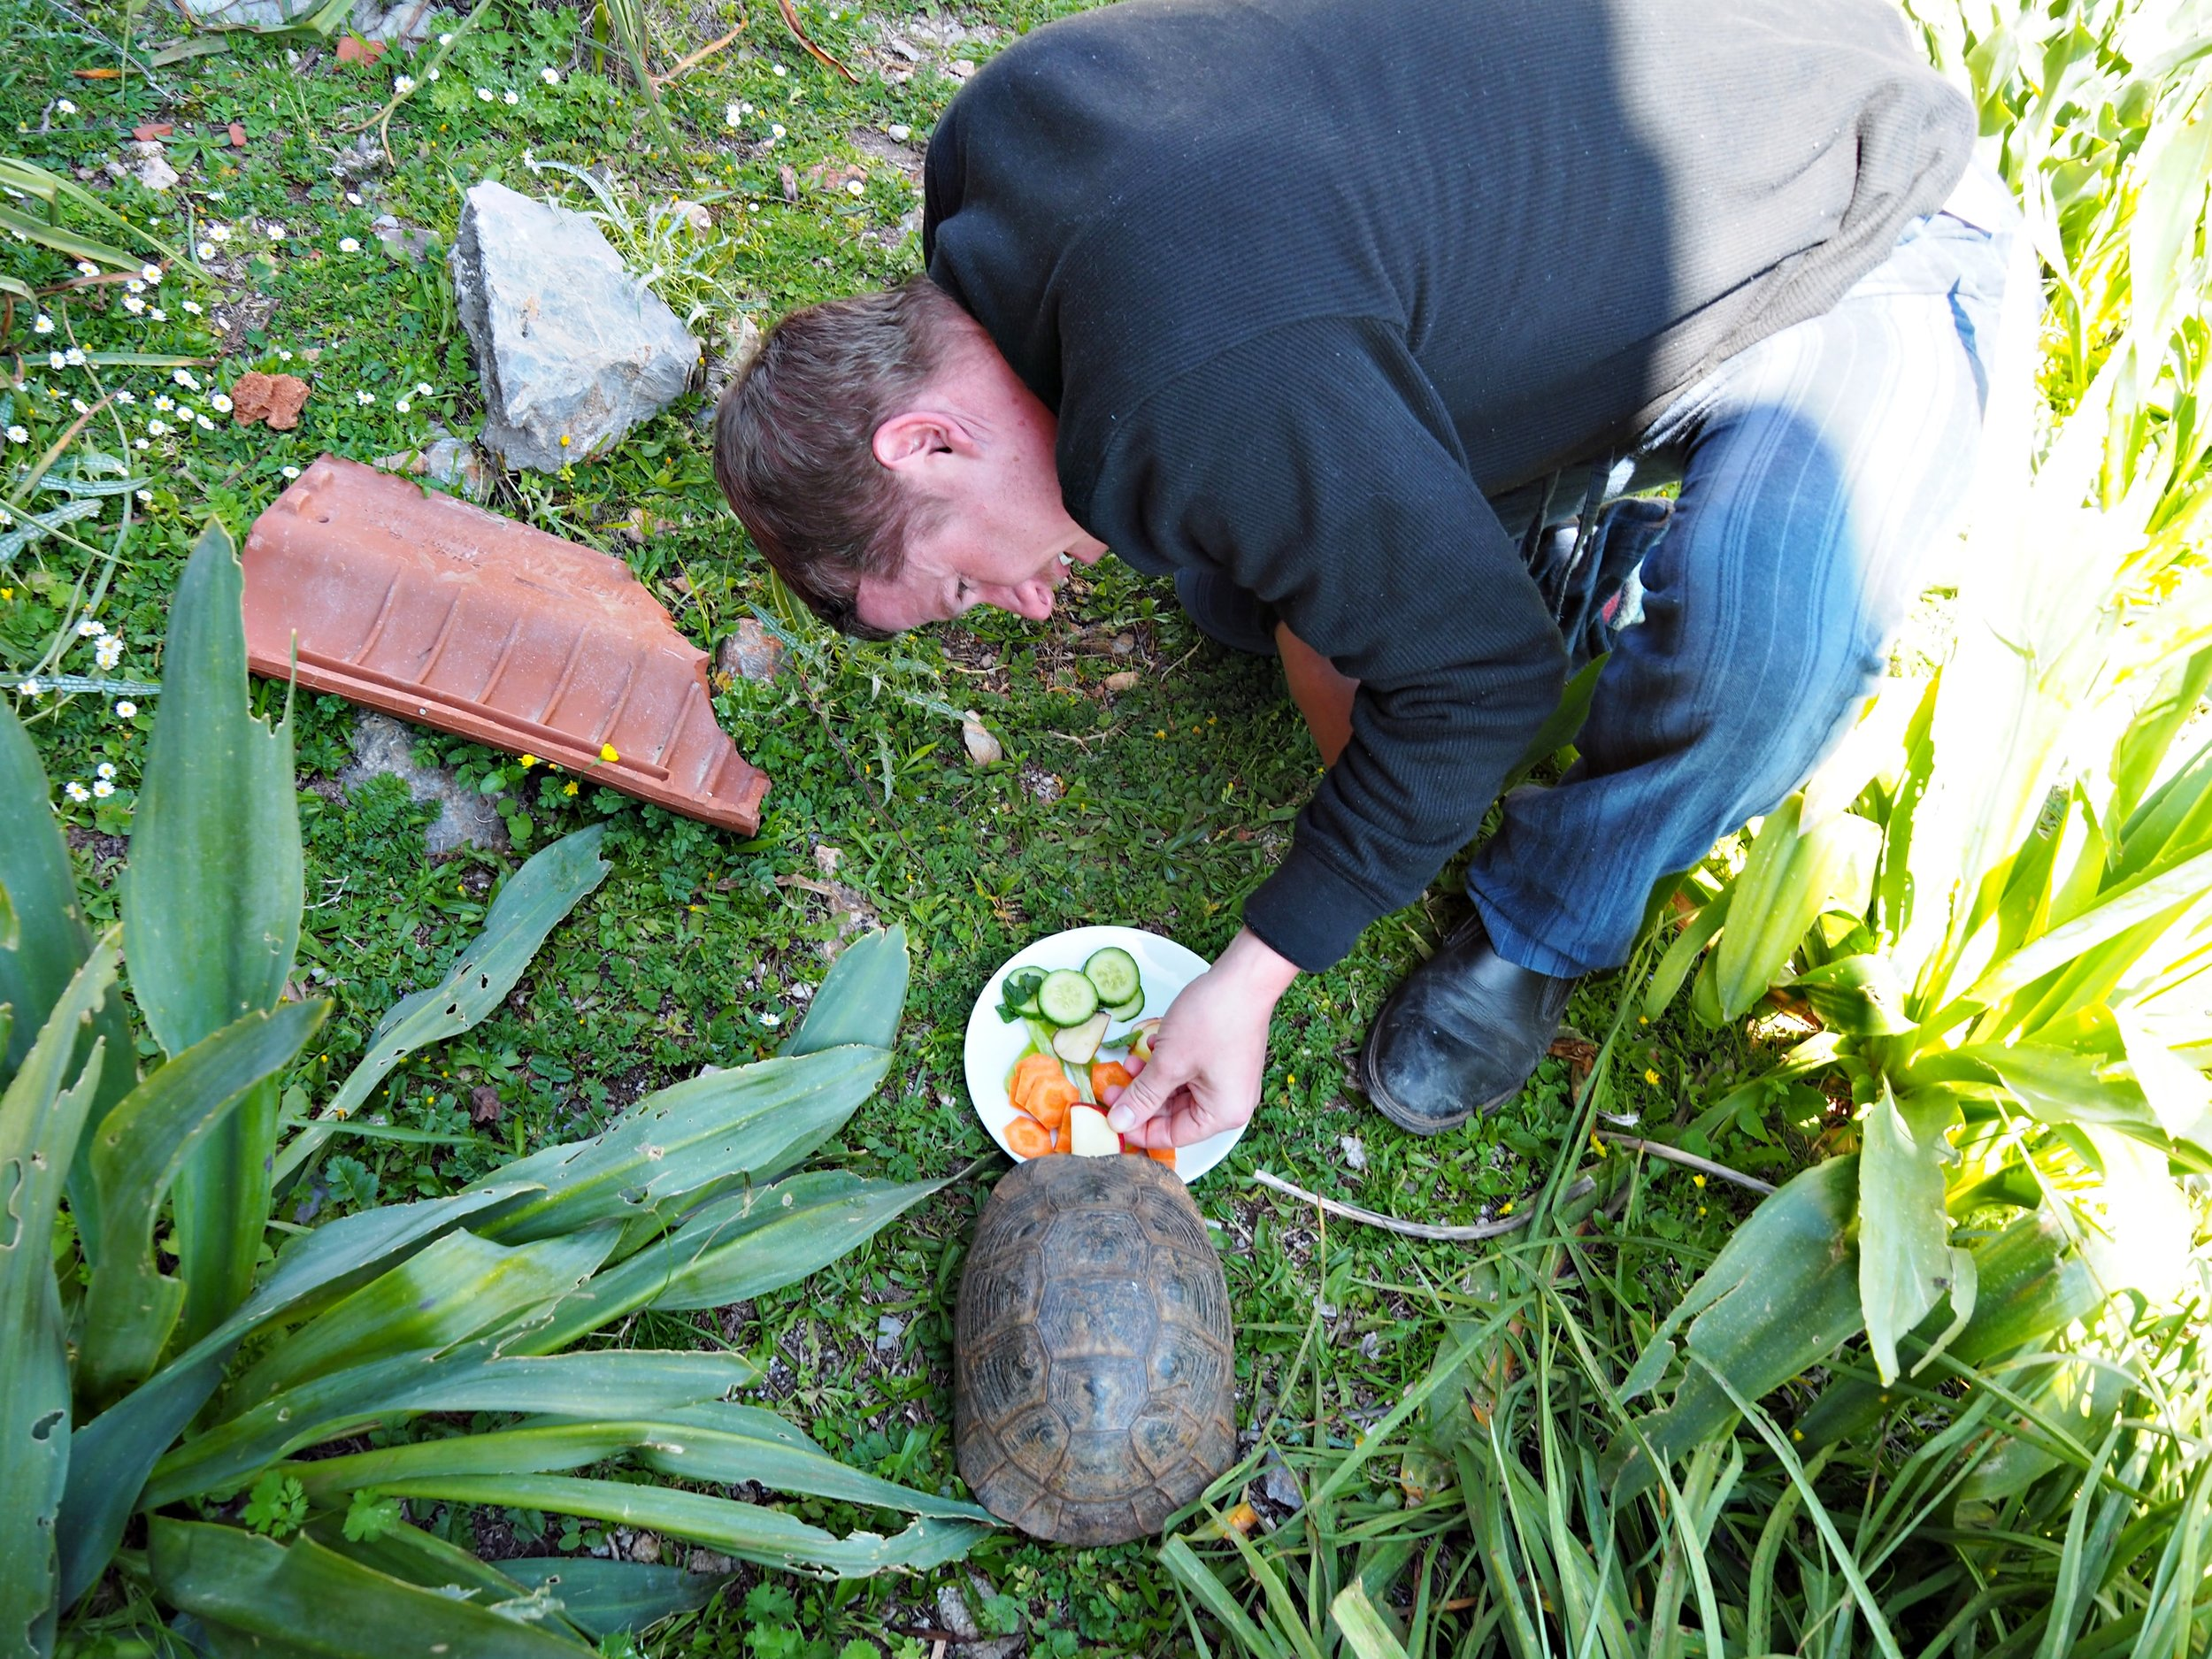 Vincent making sure one of our tortoise friends gets his 5-a-day of fruit and vegetables.